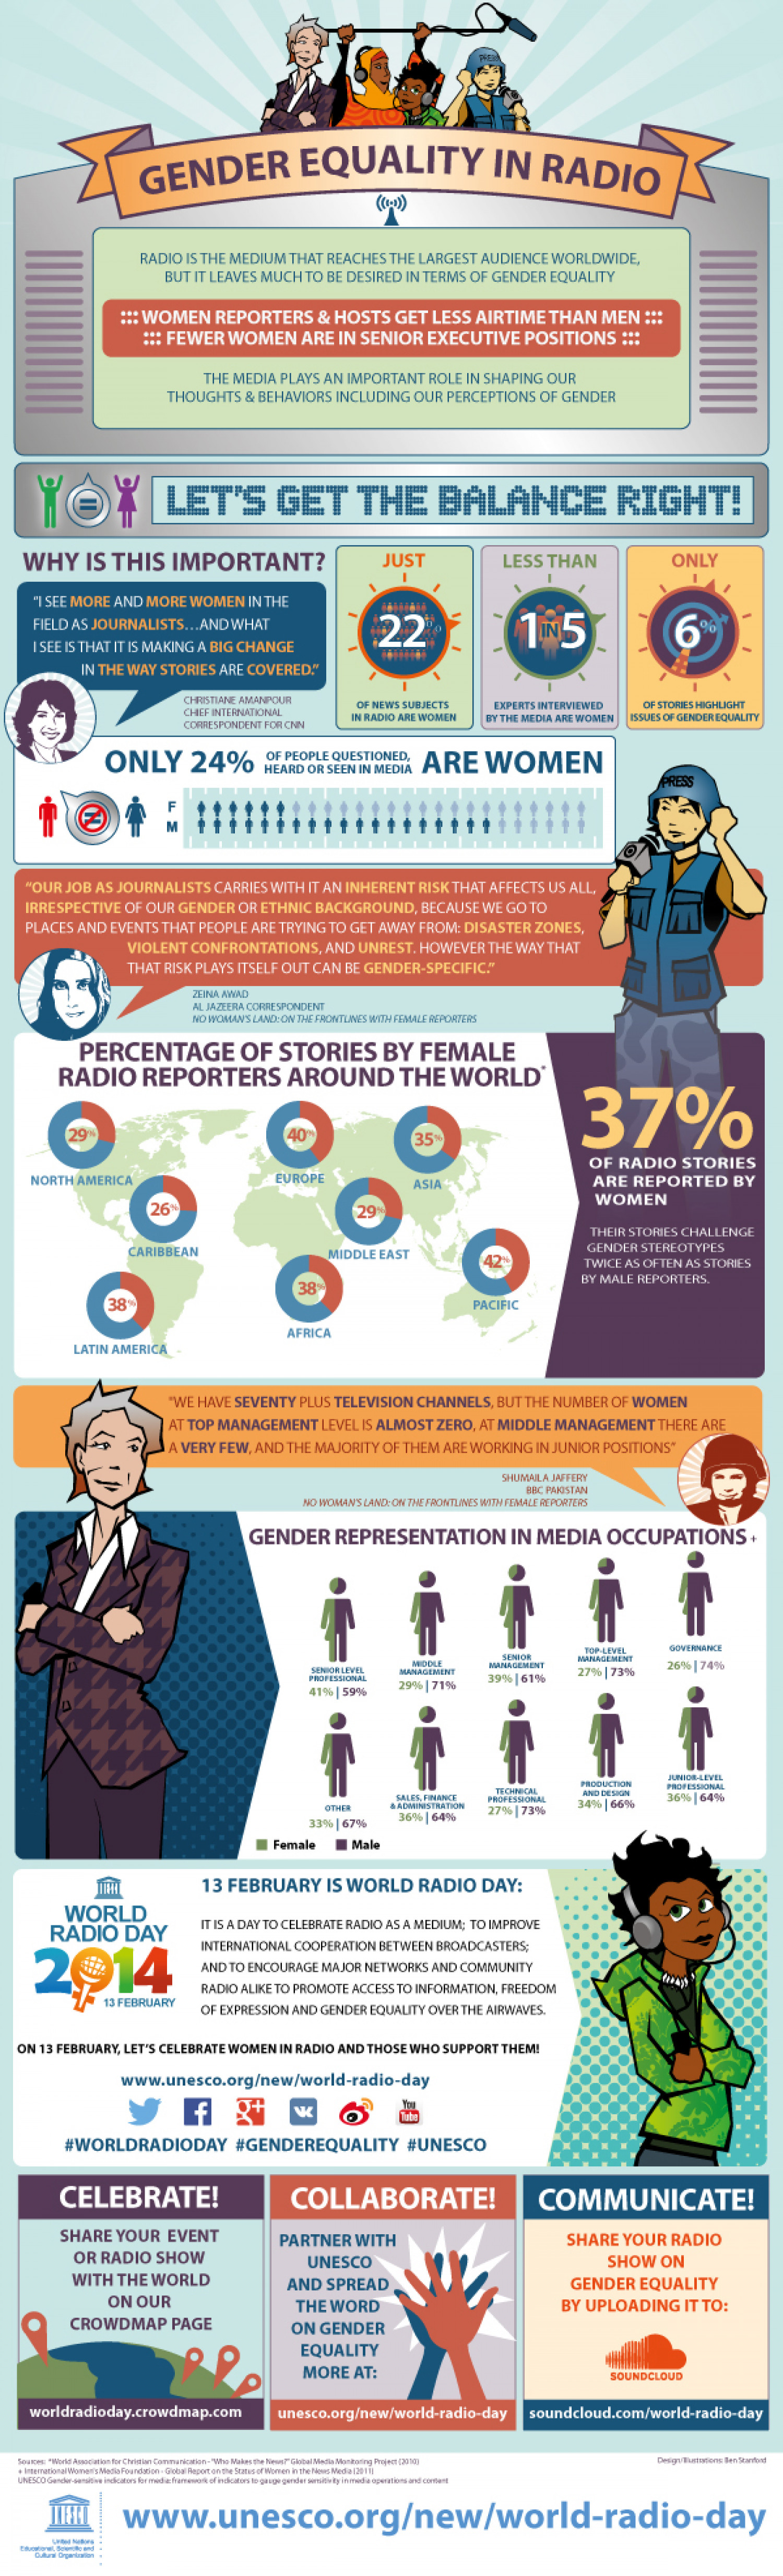 Gender Equality in Radio Infographic